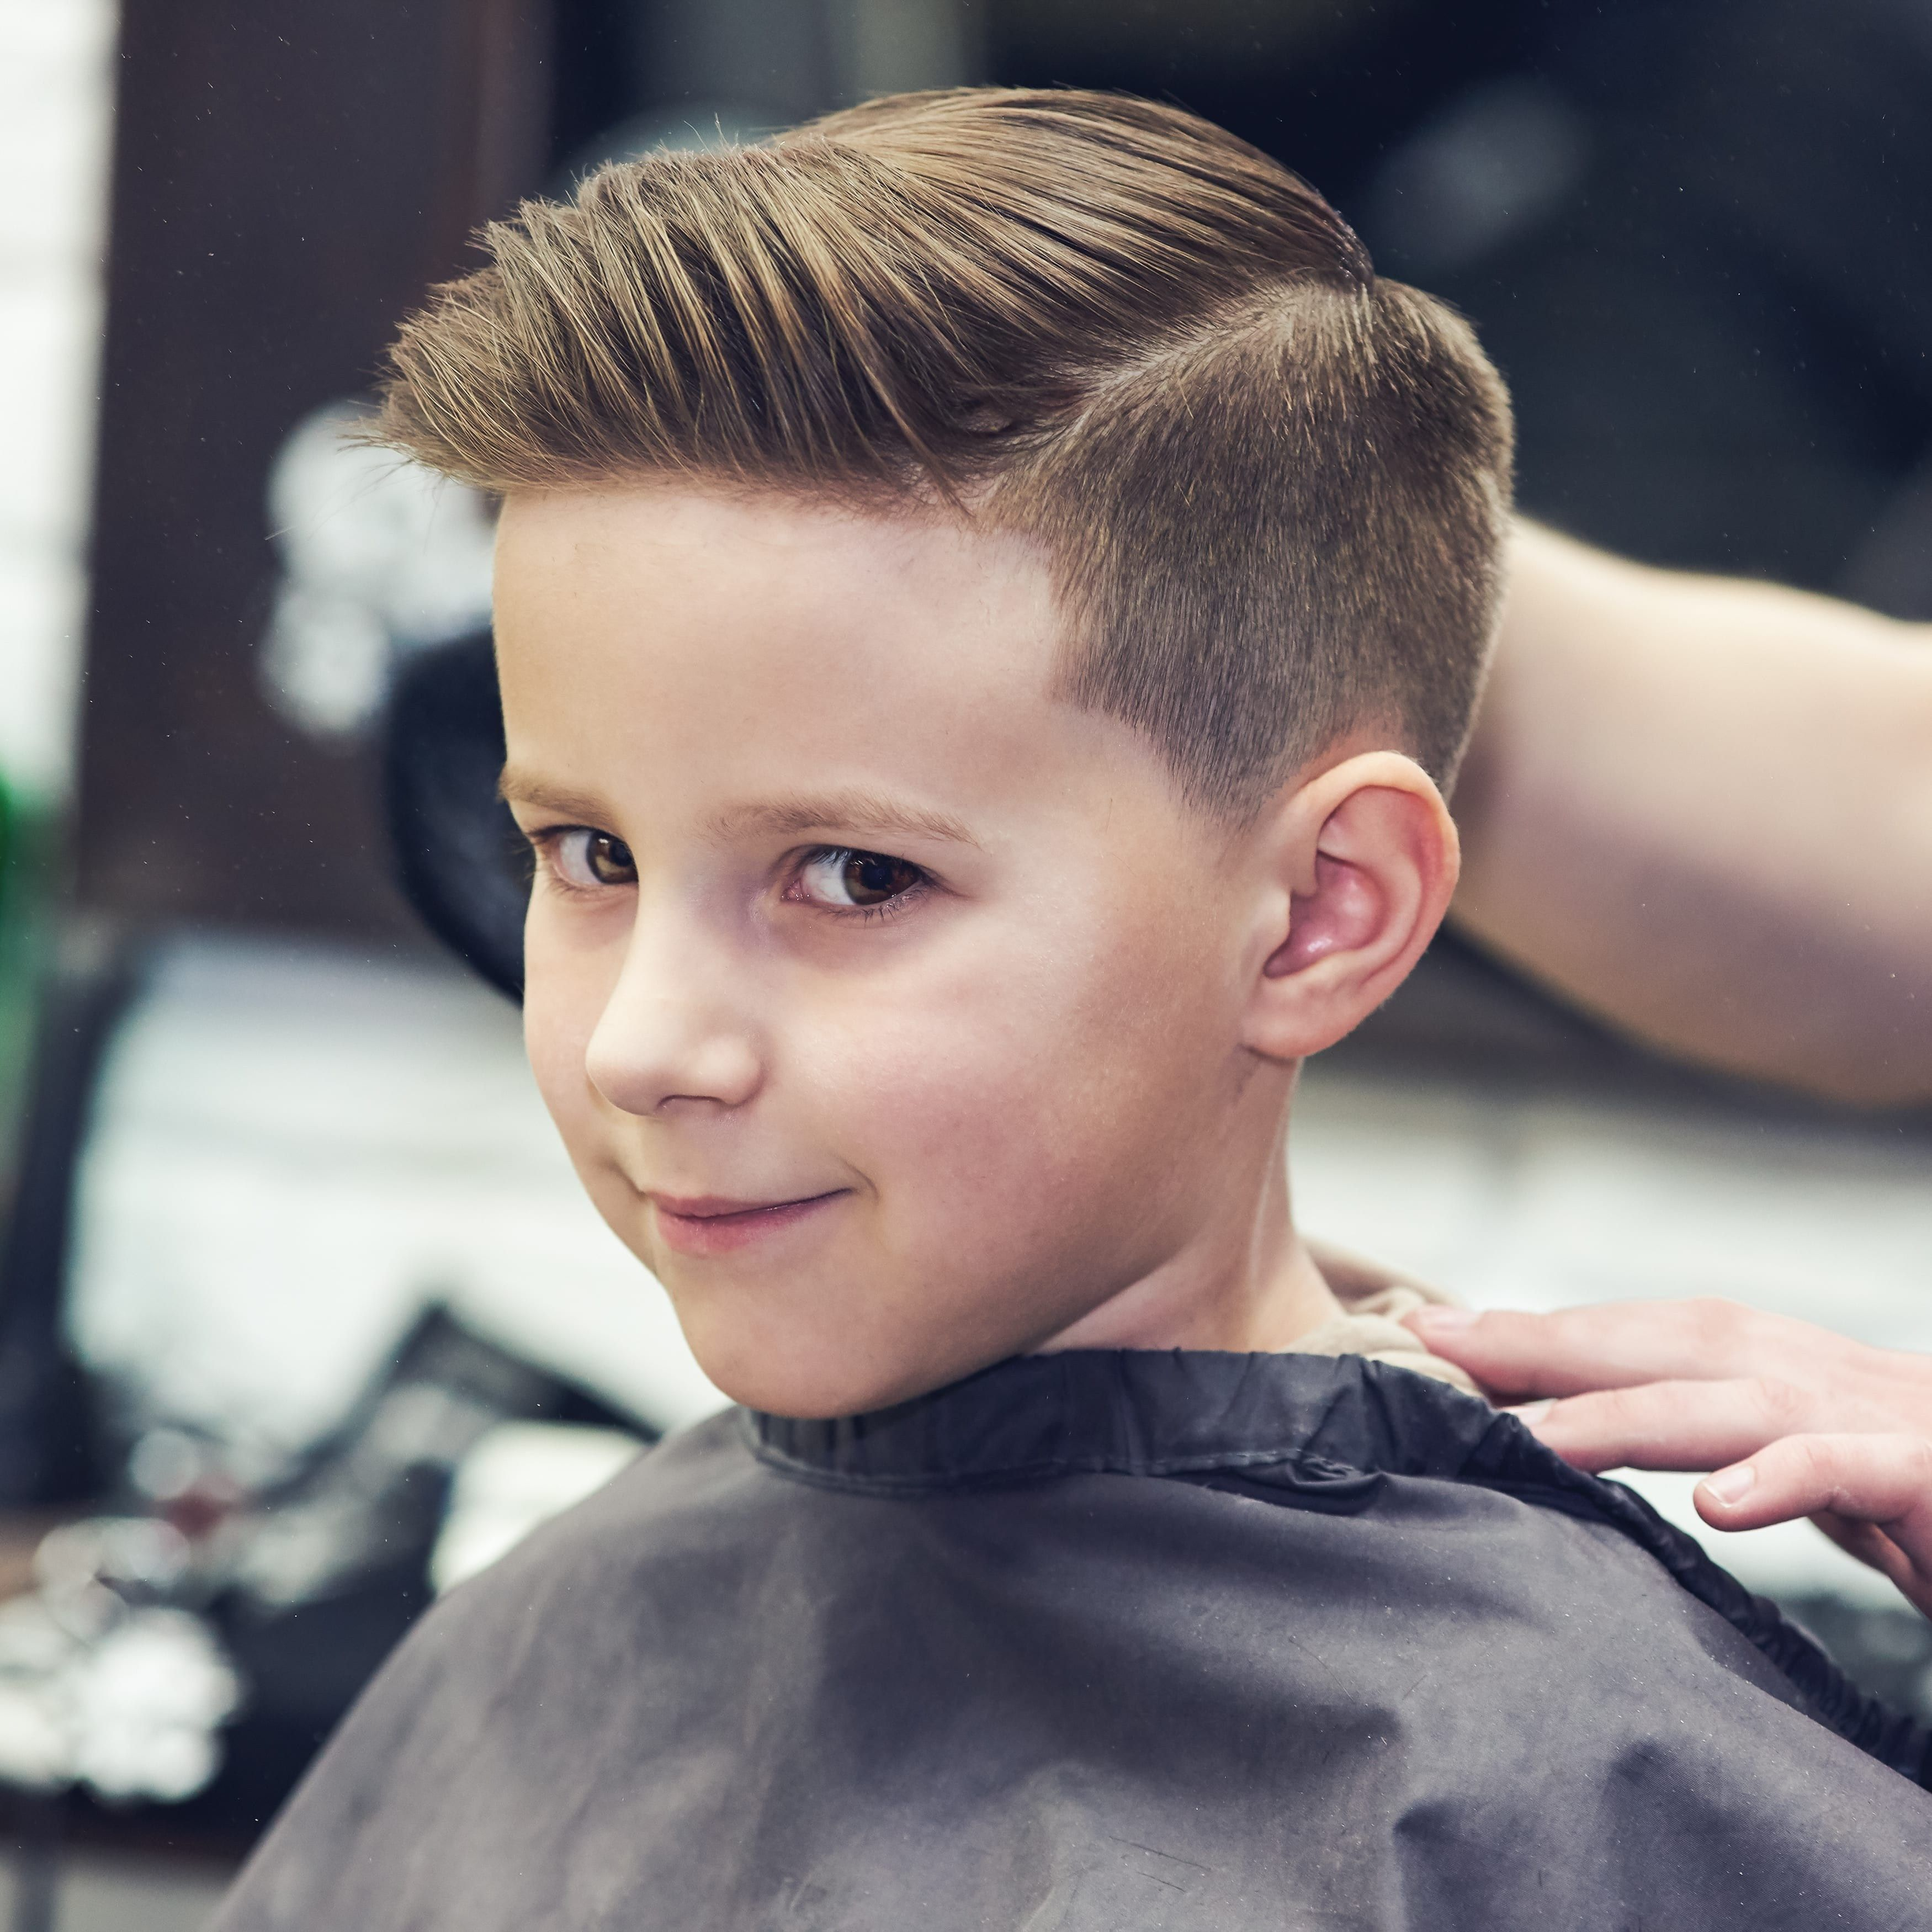 8 year old boy haircuts   hairstyleva   hair style in 2019